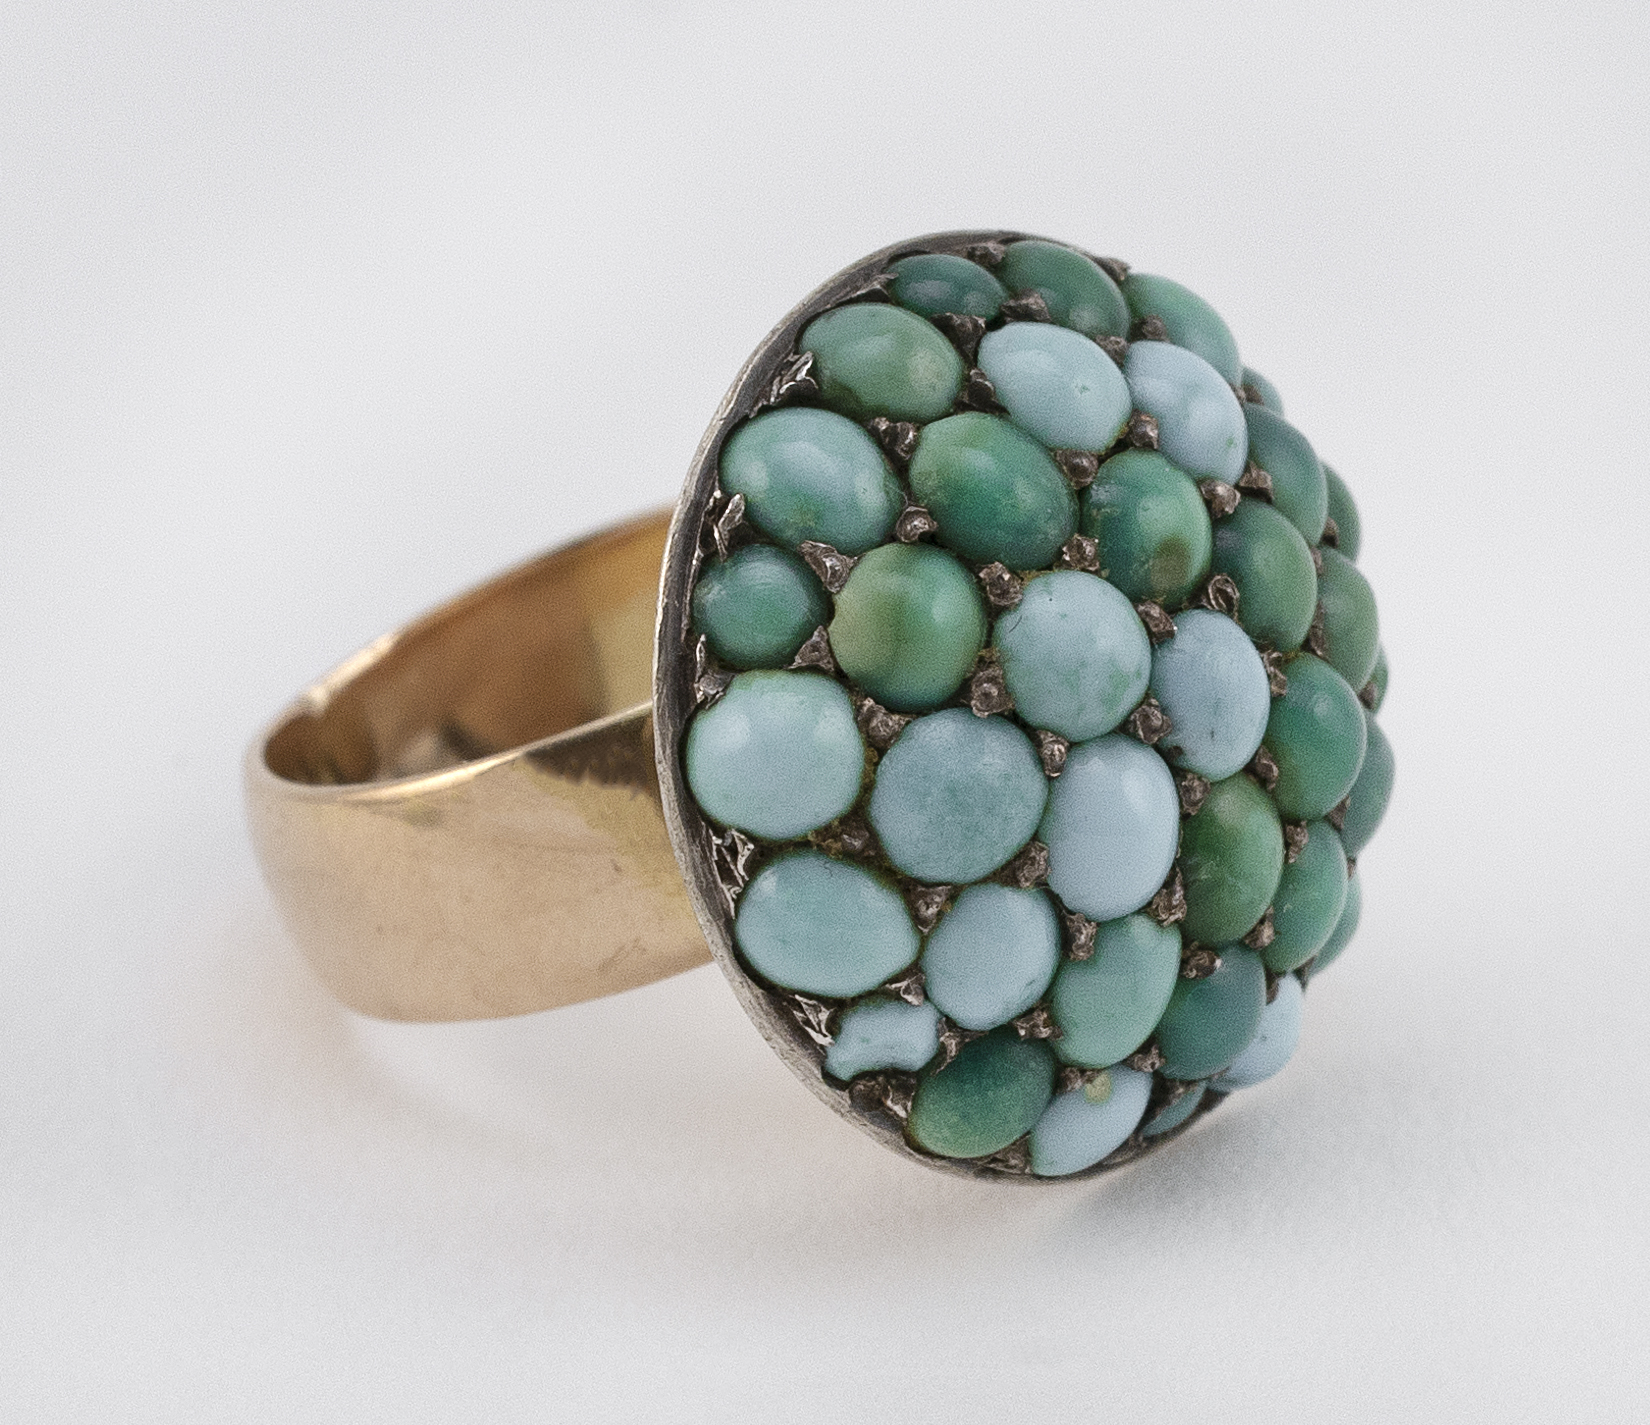 VICTORIAN TURQUOISE, SILVER AND GOLD RING